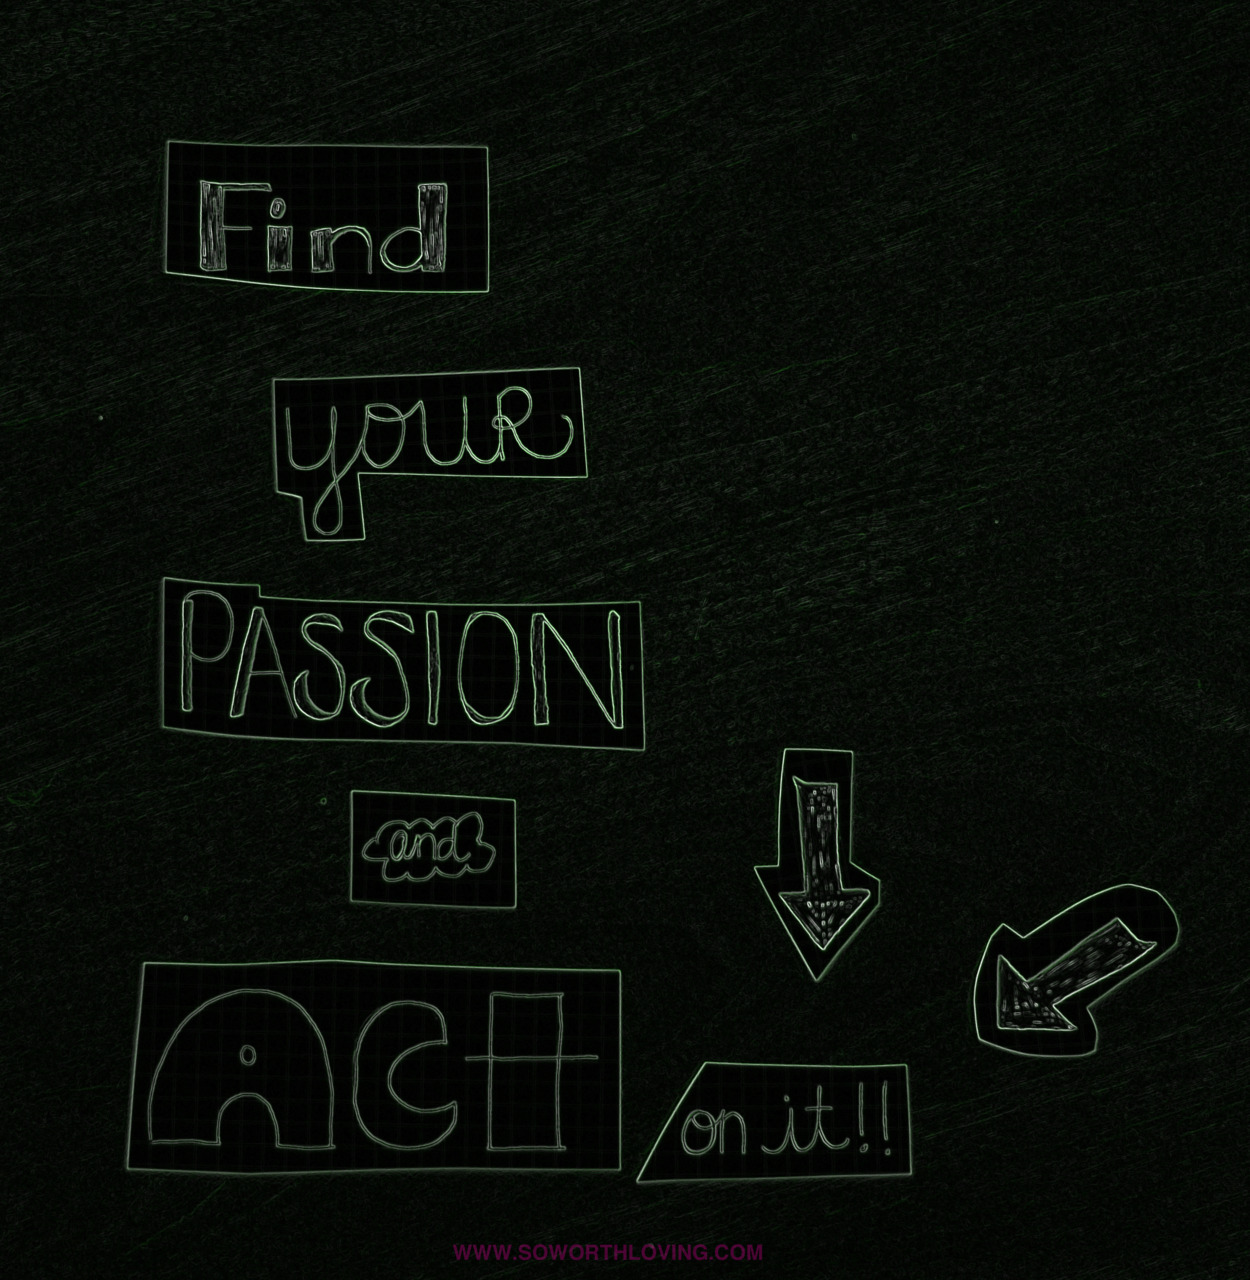 find your passion and act on it.. dont let the days go by and just keep wishing